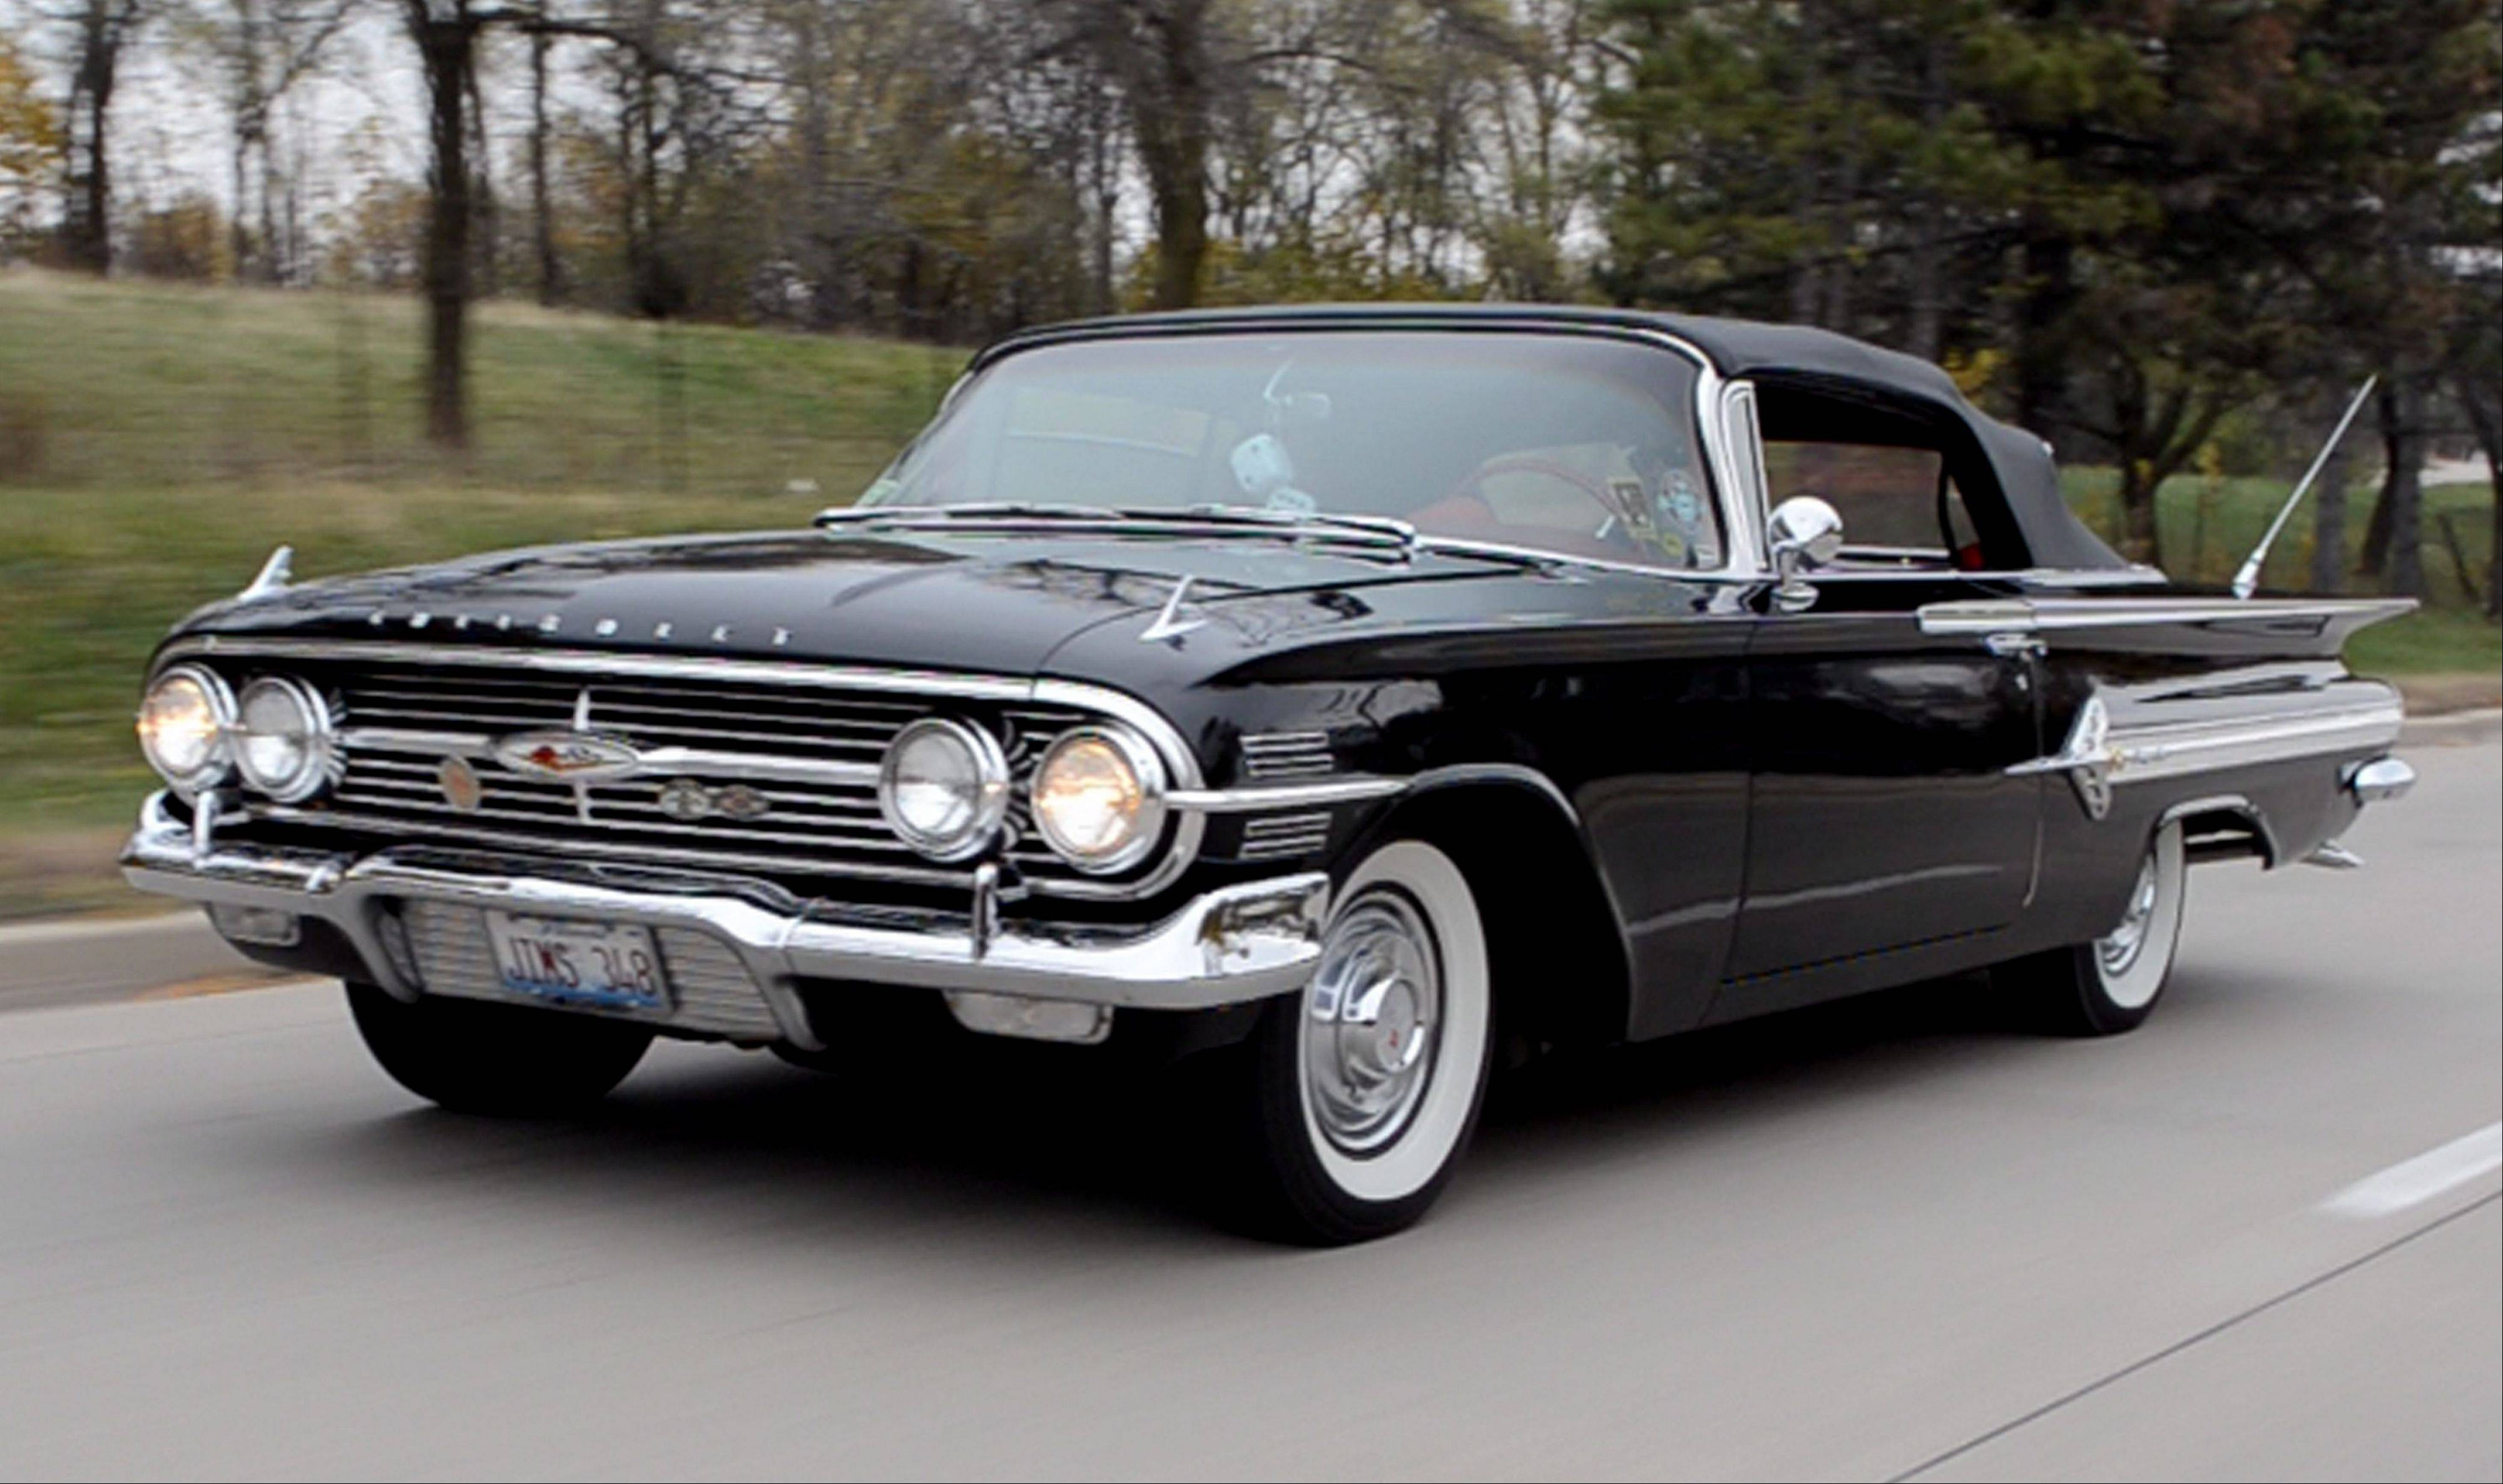 The owner of this vintage Chevrolet Impala cruised to Wisconsin for the most recent Brighton Run.